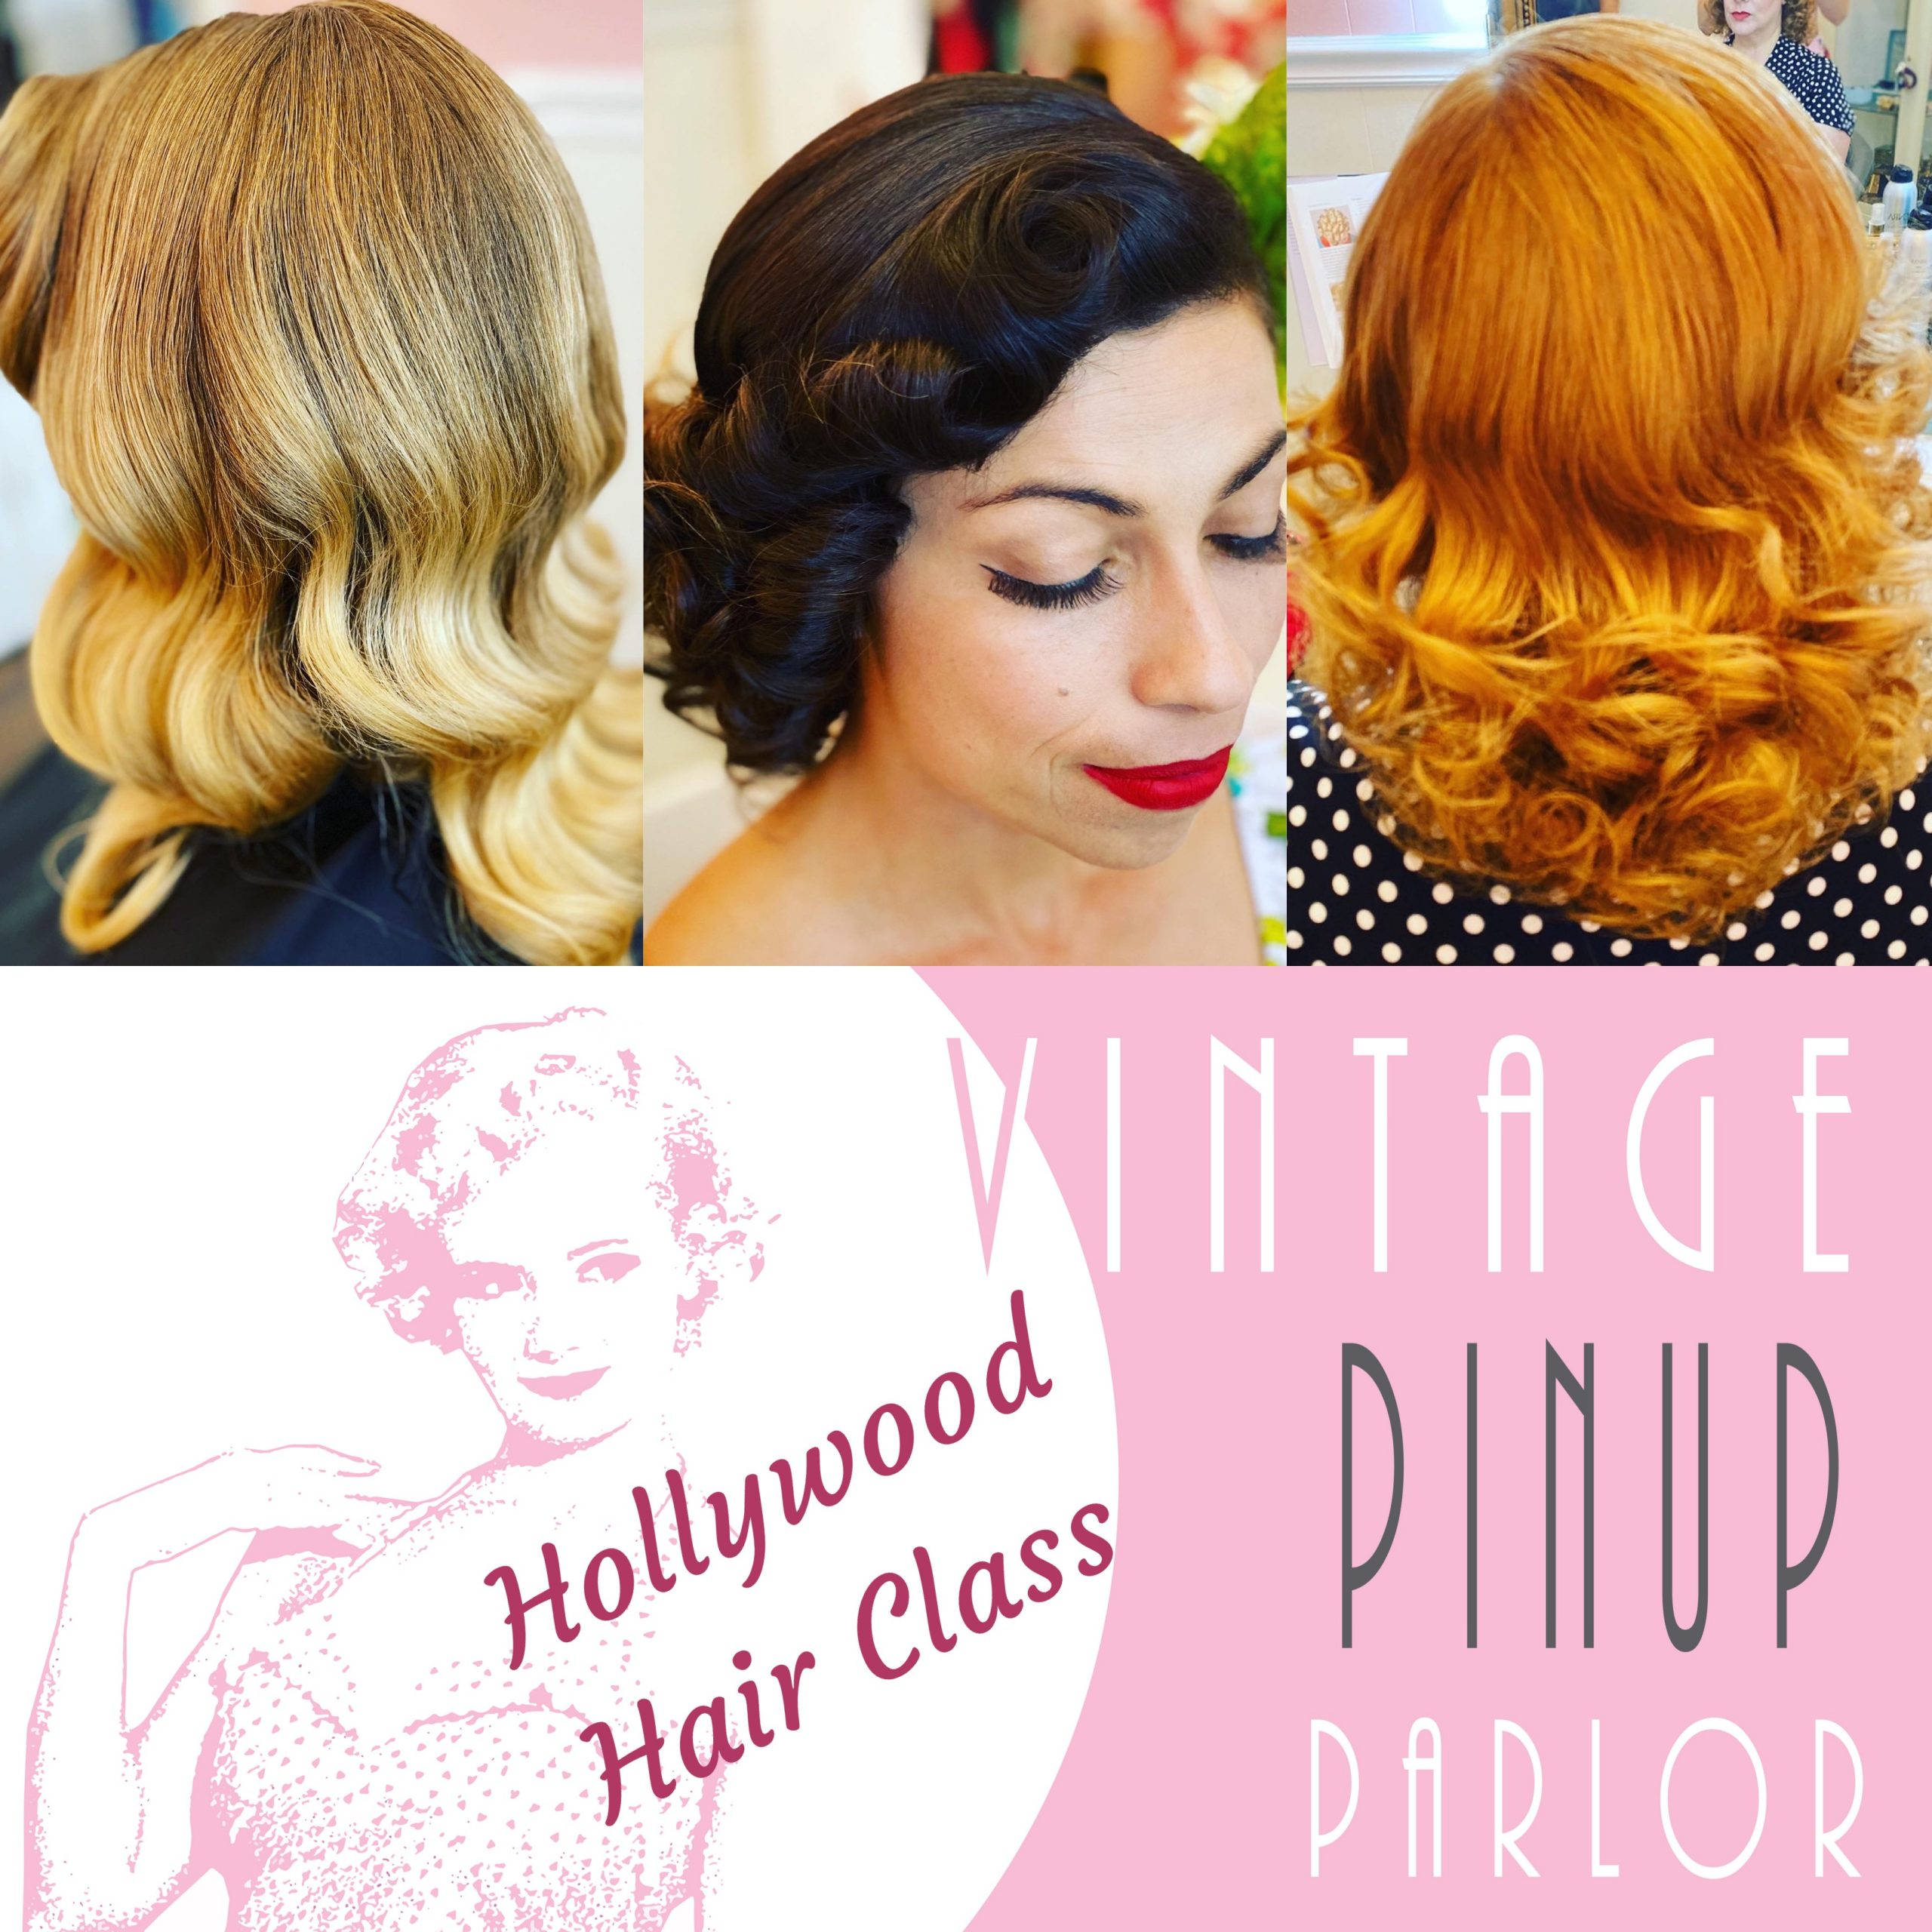 Vintage Pin Up Parlor